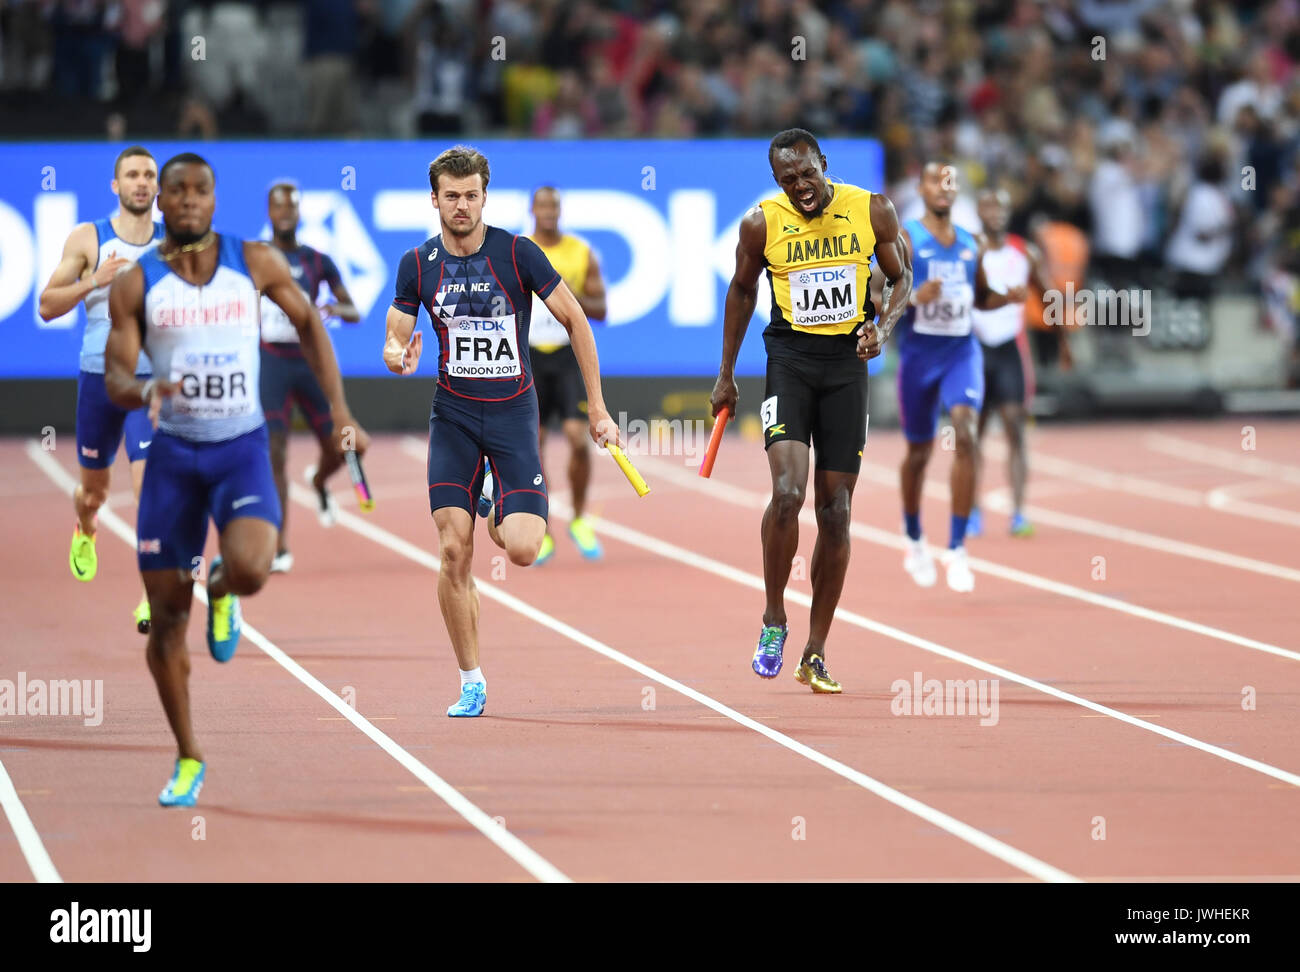 Londres, Royaume-Uni. 12 août, 2017. Usain Bolt s'blessé dans sa dernière course, au relais 4x100 à l'Athlétisme de l'IAAF World Championships London 2017 Credit : Mariano Garcia/Alamy Live News Photo Stock